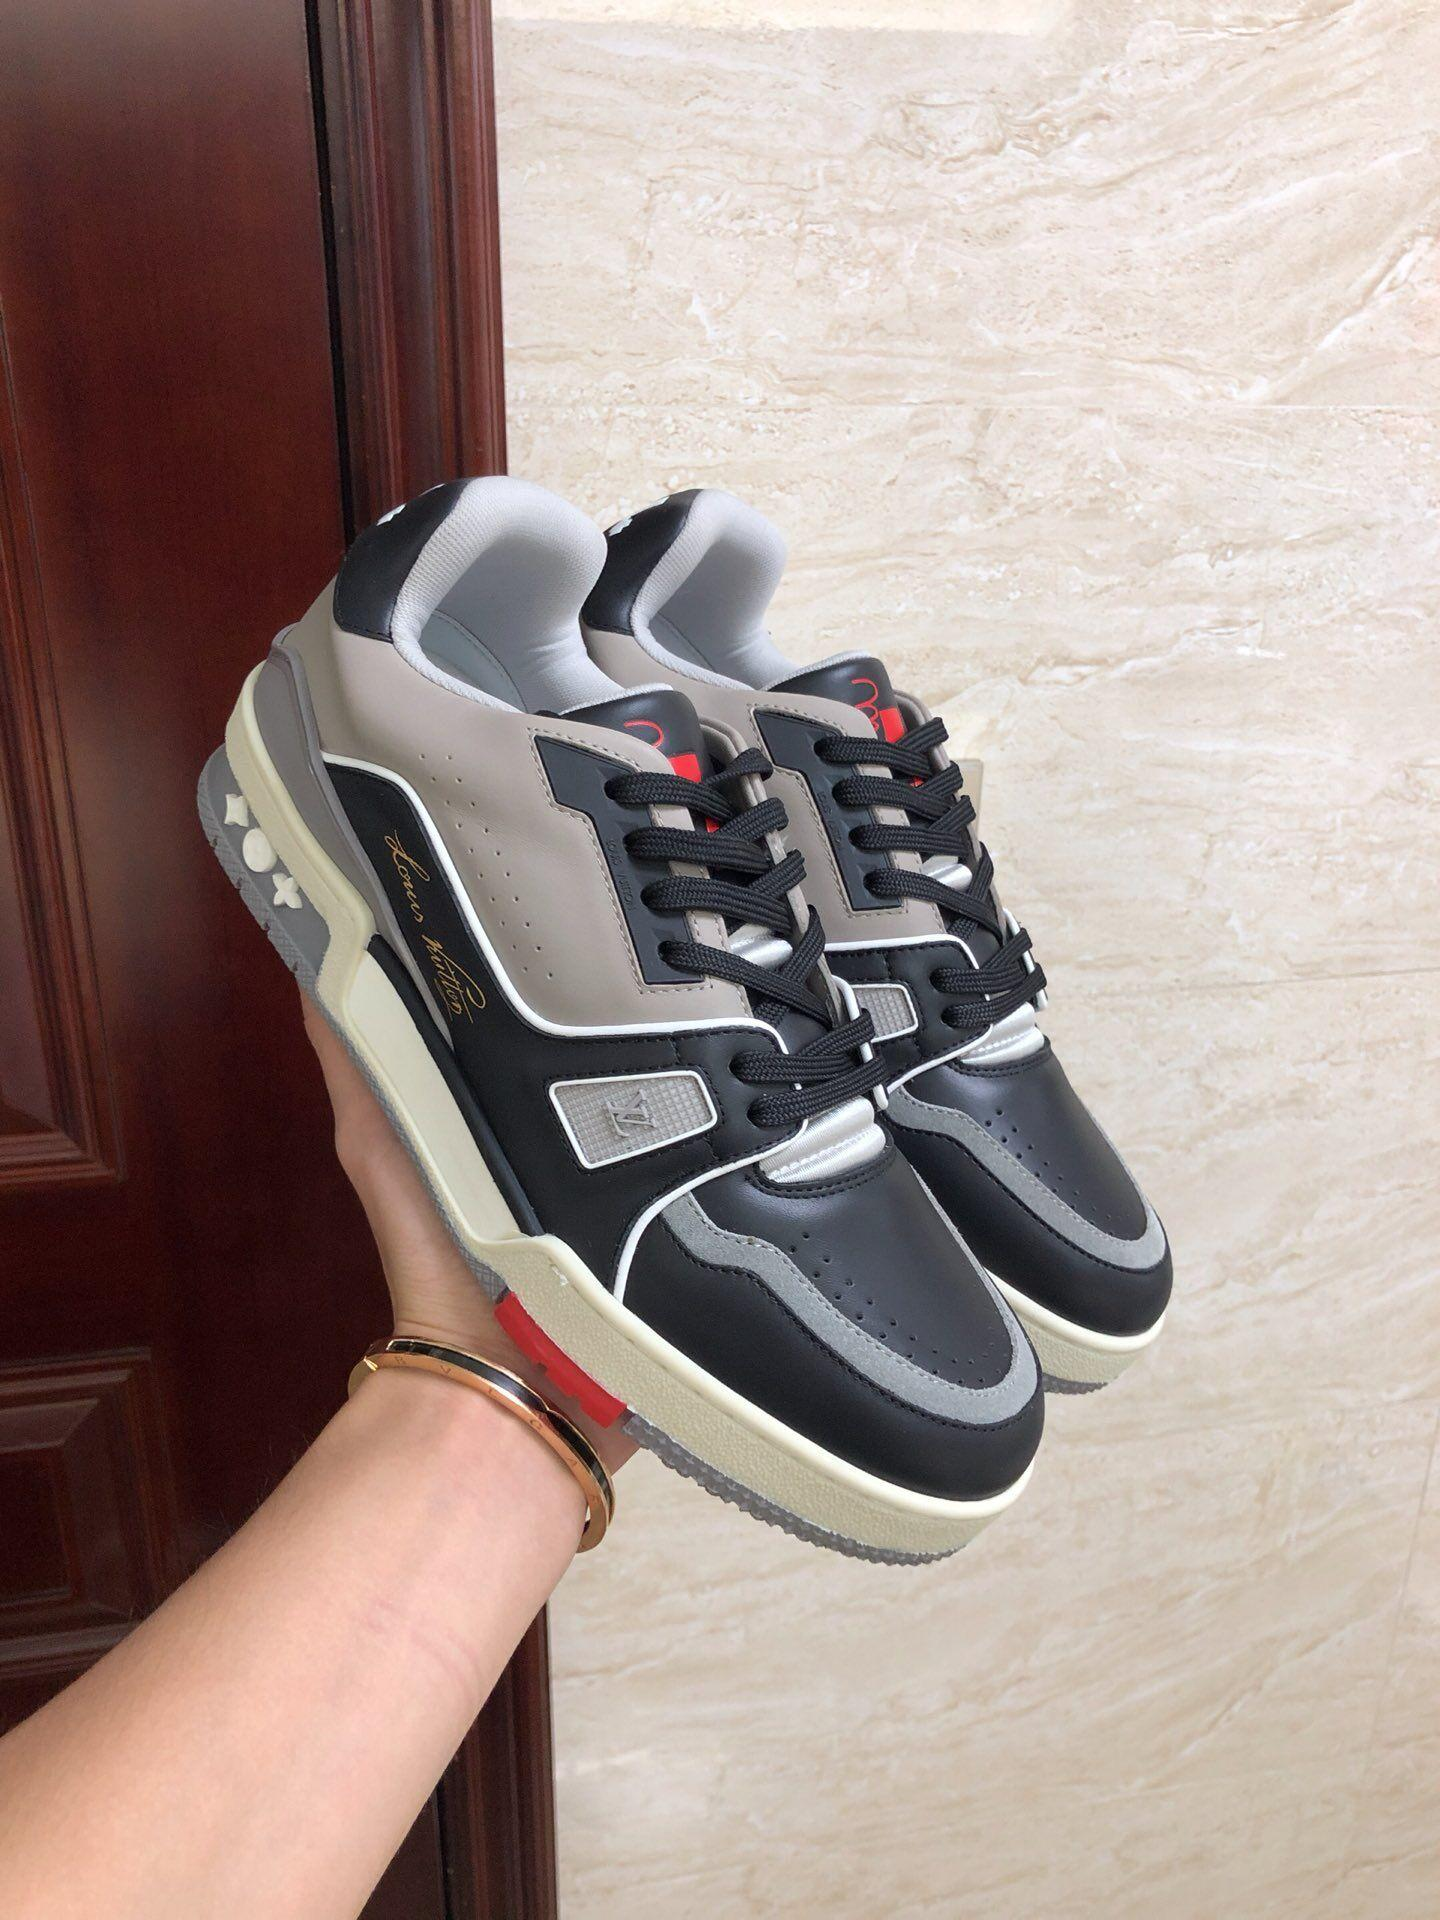 trainer sneaker Calf leather Black 1A54H5    sneaker    shoes  1